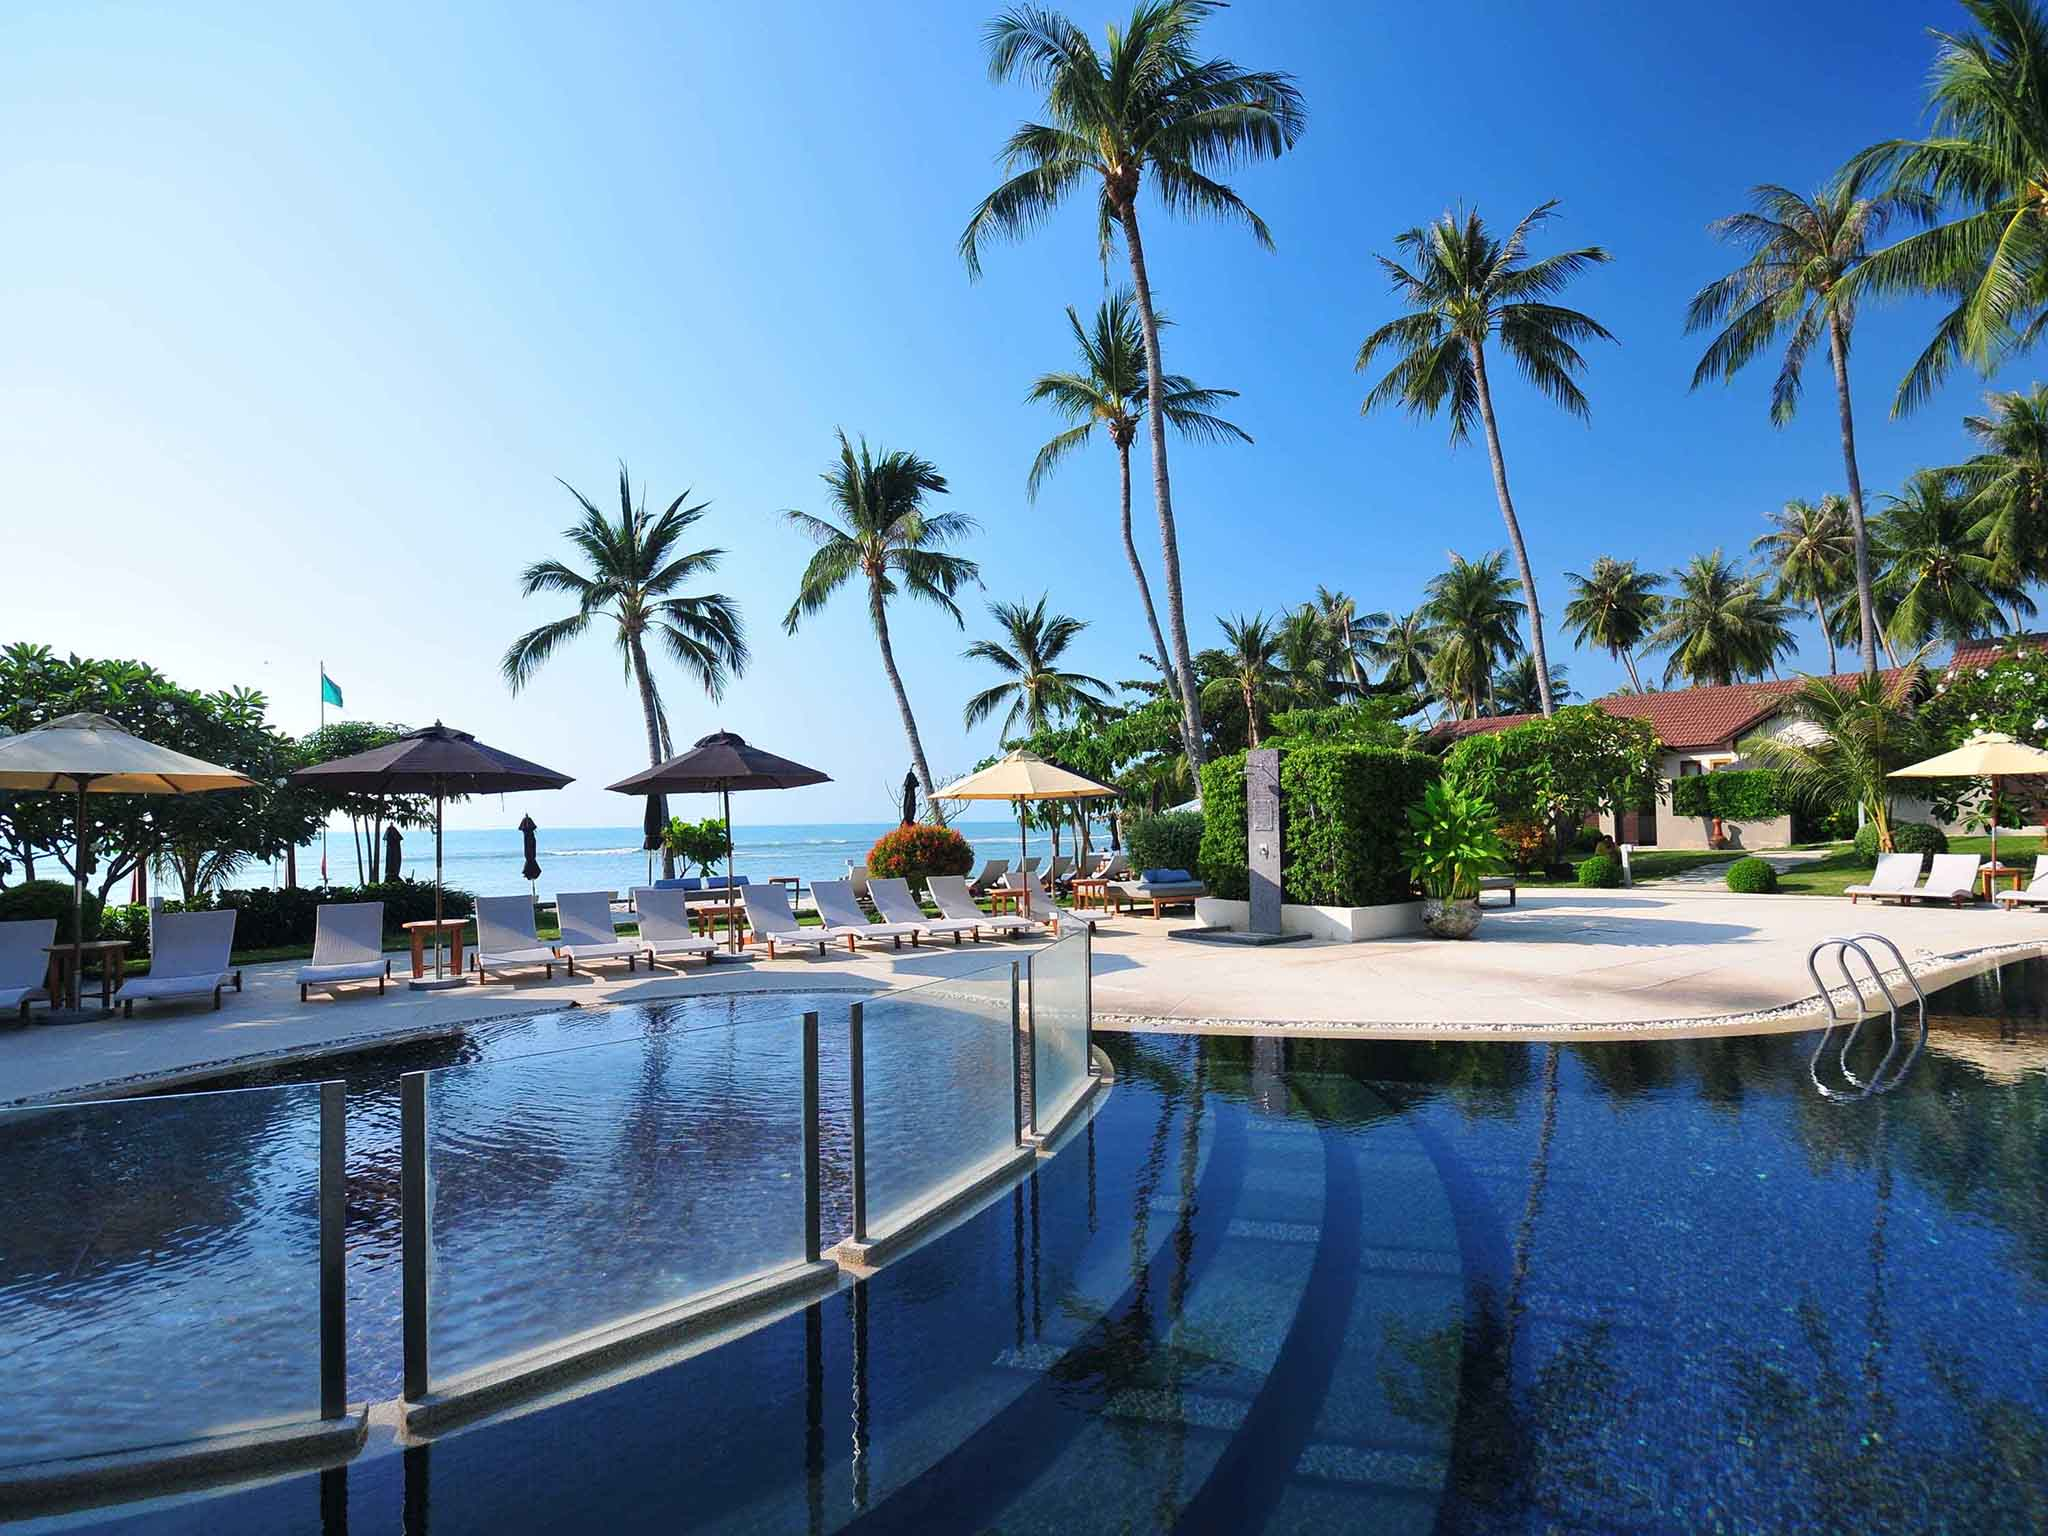 Hotel Mercure Koh Samui Beach Resort